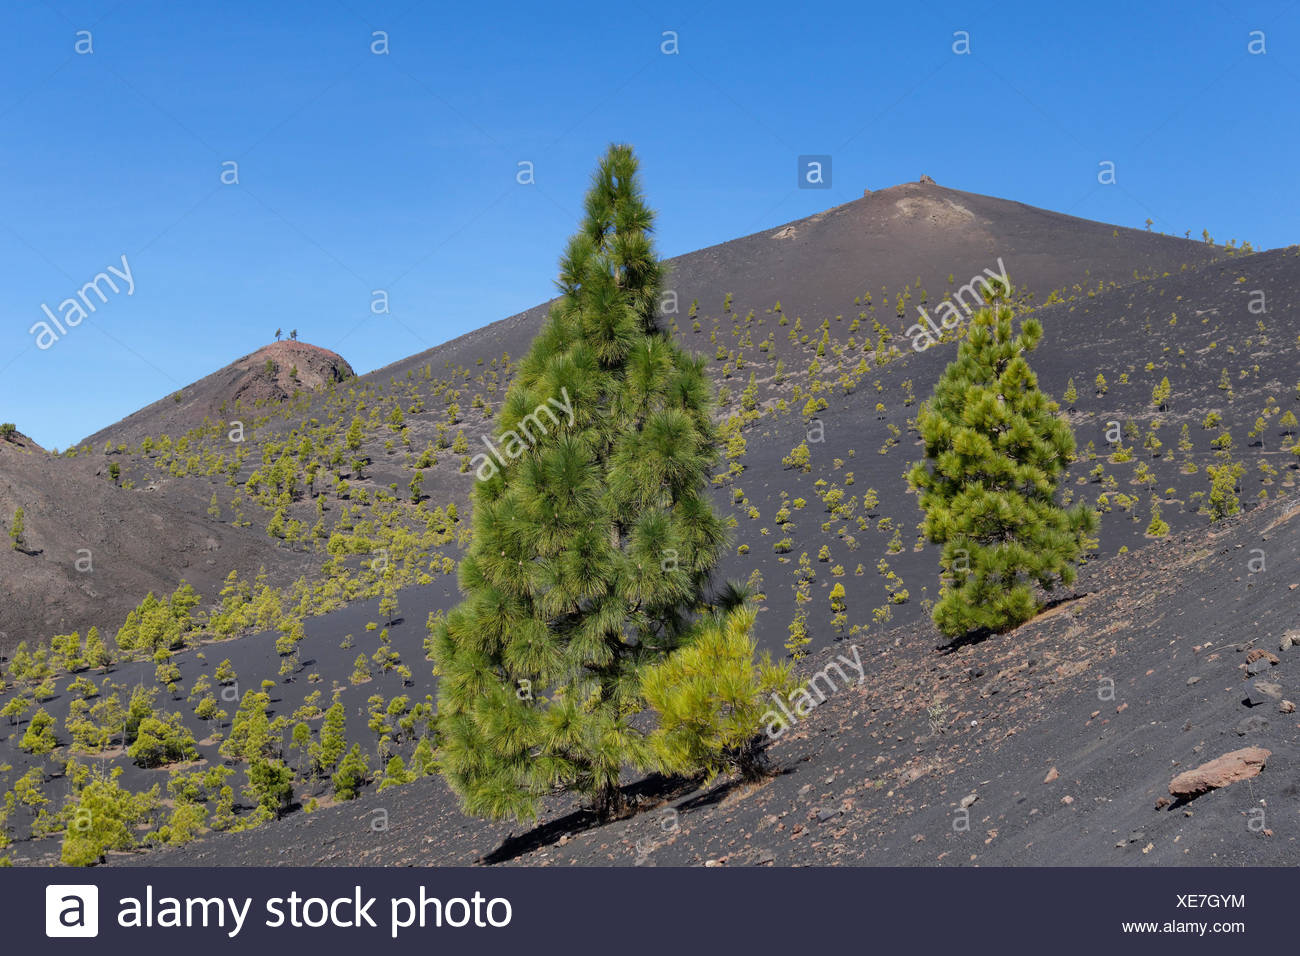 Volcano San Martín, Cumbre Vieja in Fuencaliente, La Palma, Canary Islands, Spain - Stock Image